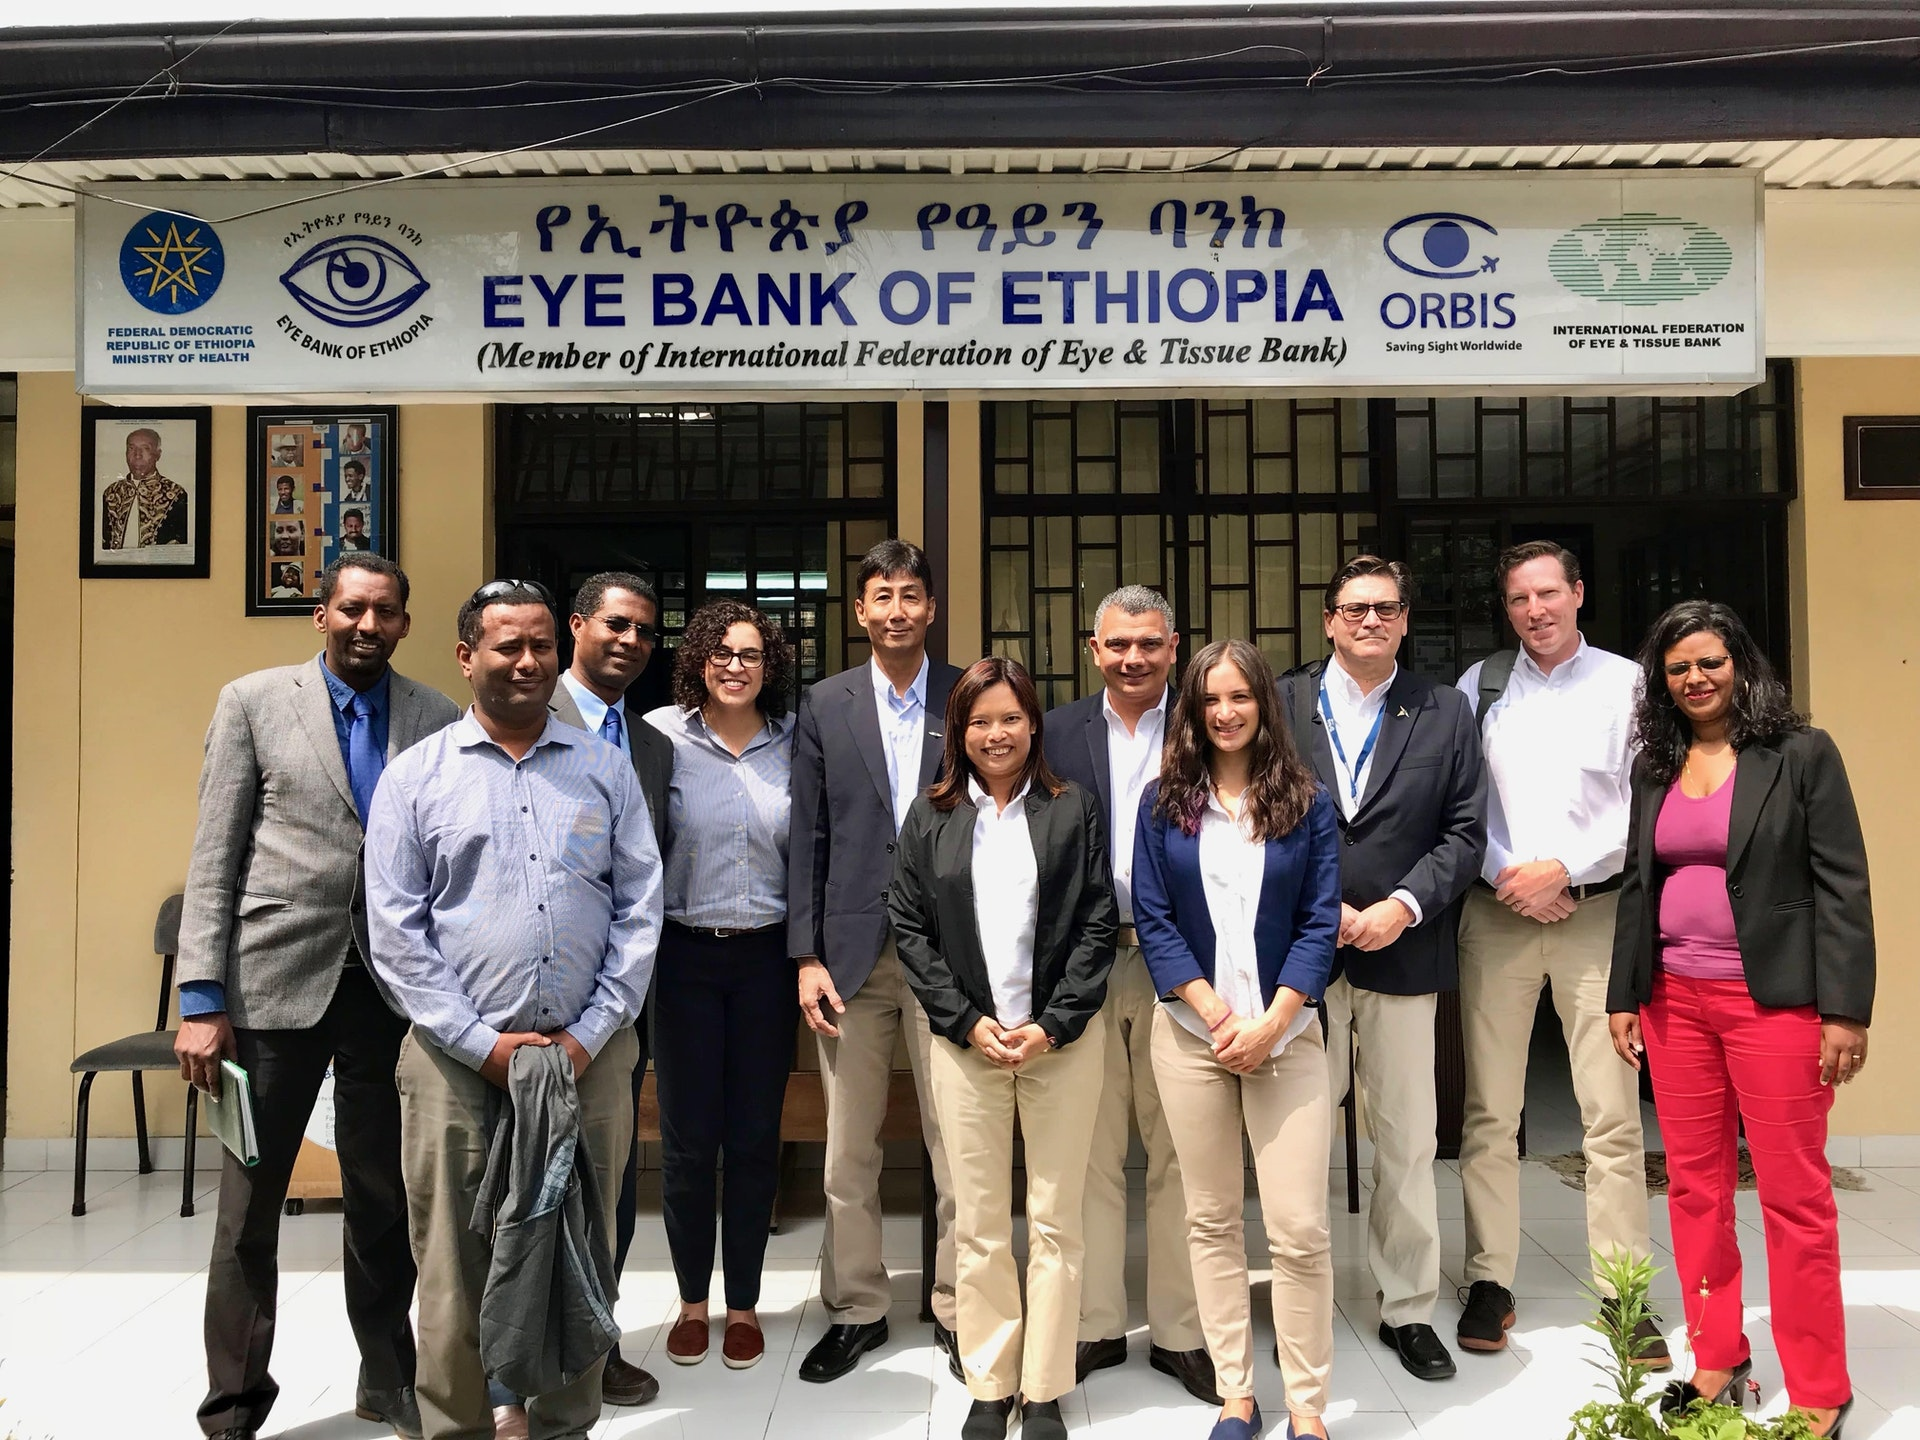 Communications Manager Celia Yeung outside the Eye Bank of Ethiopia